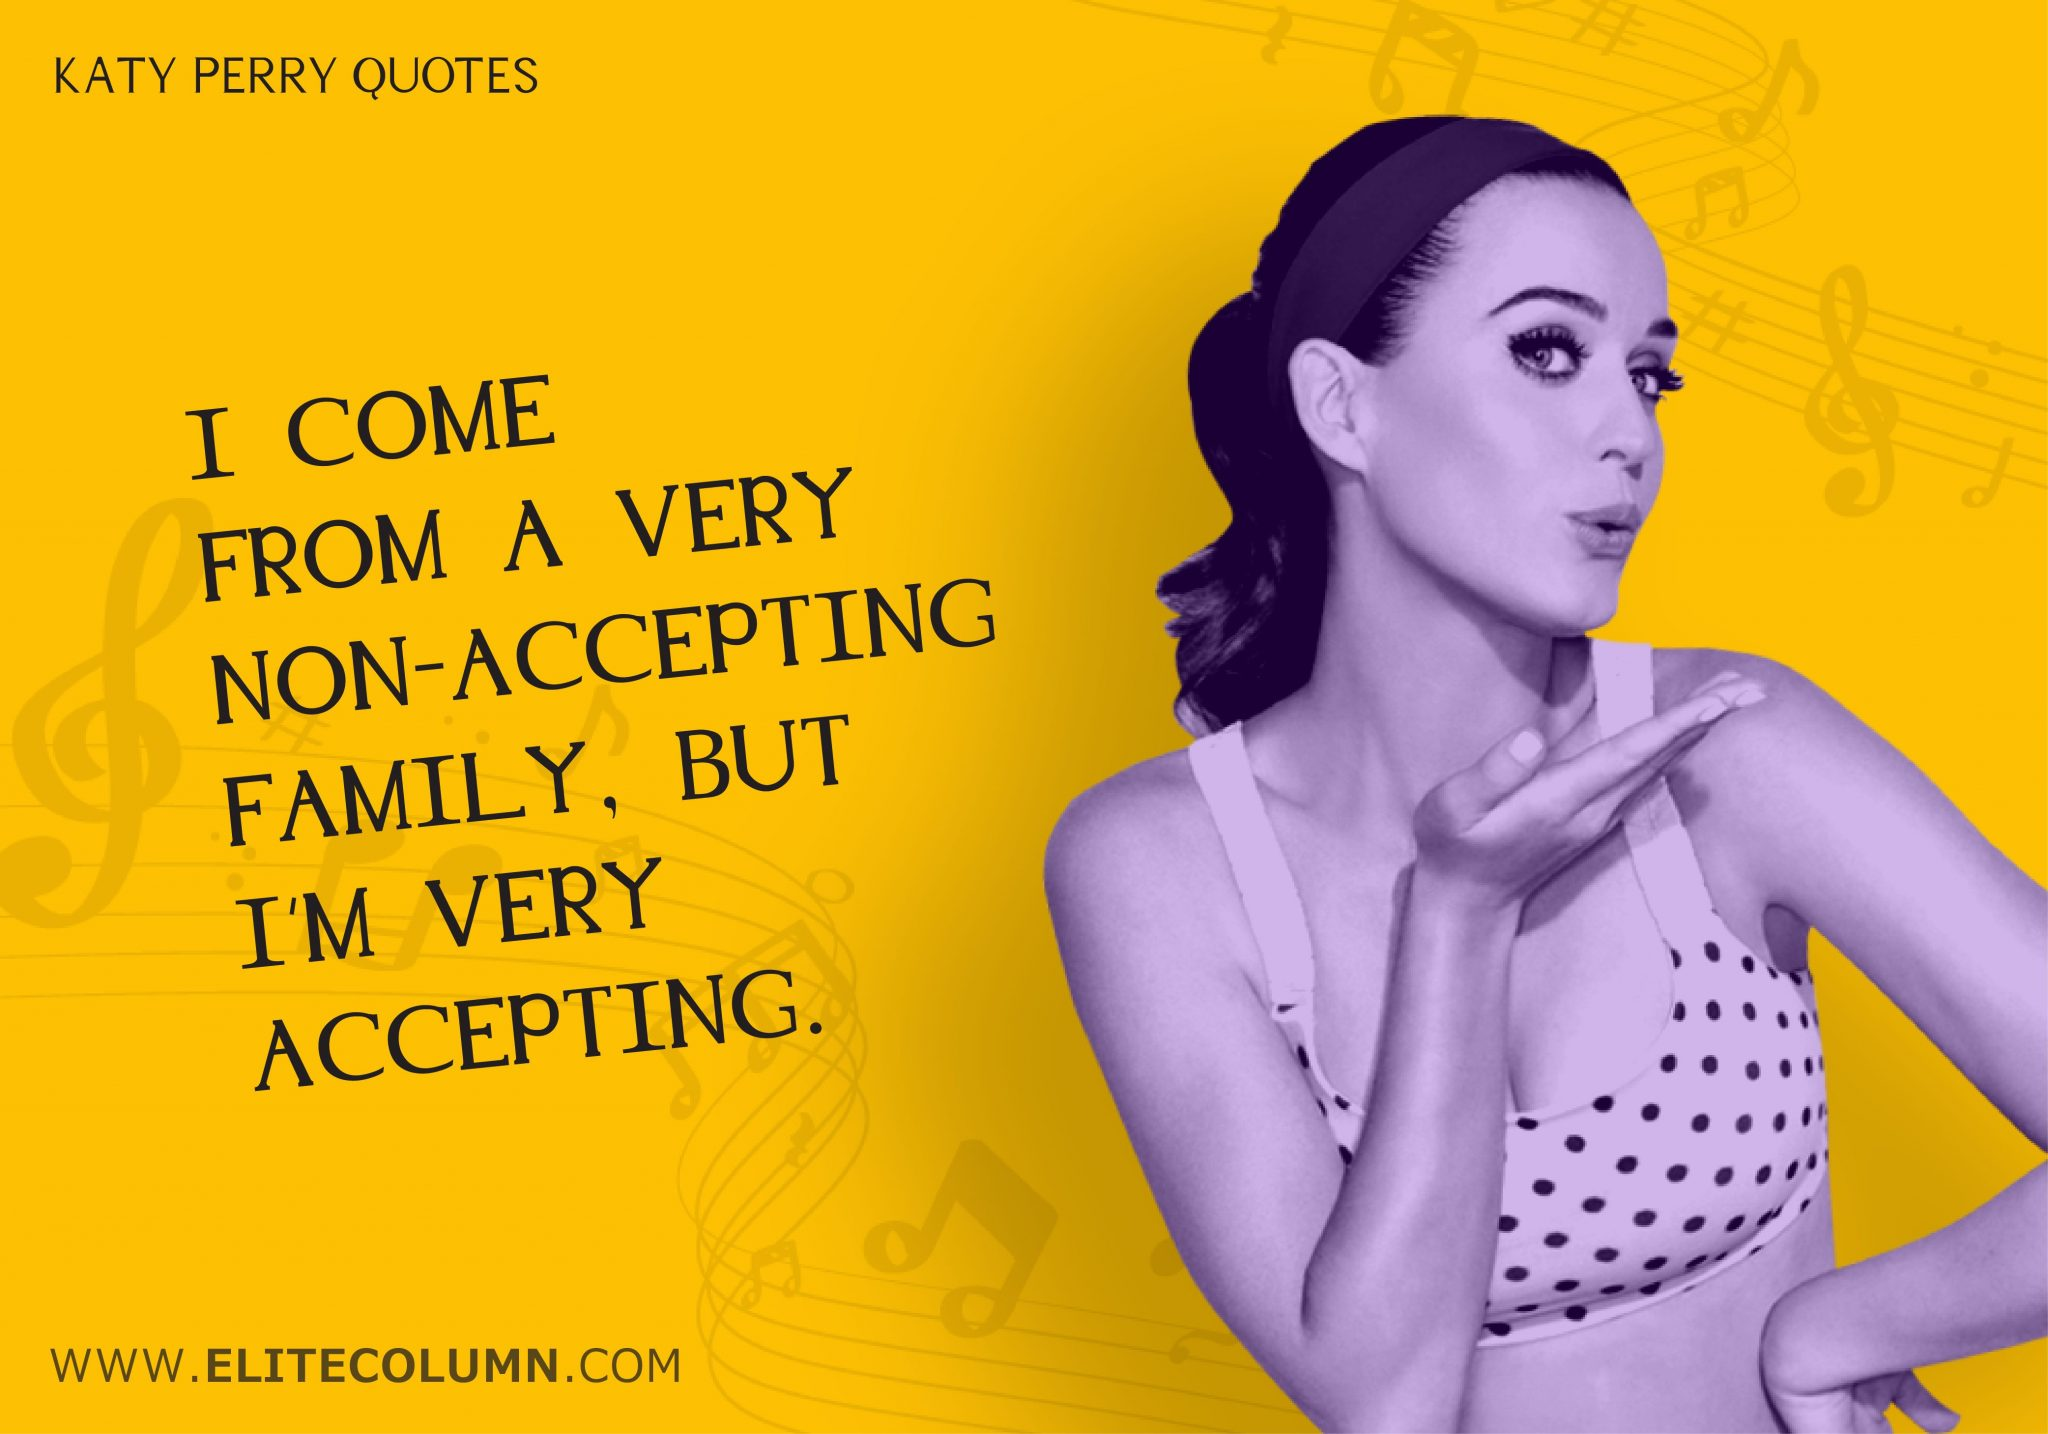 Katy Perry Quotes (2)